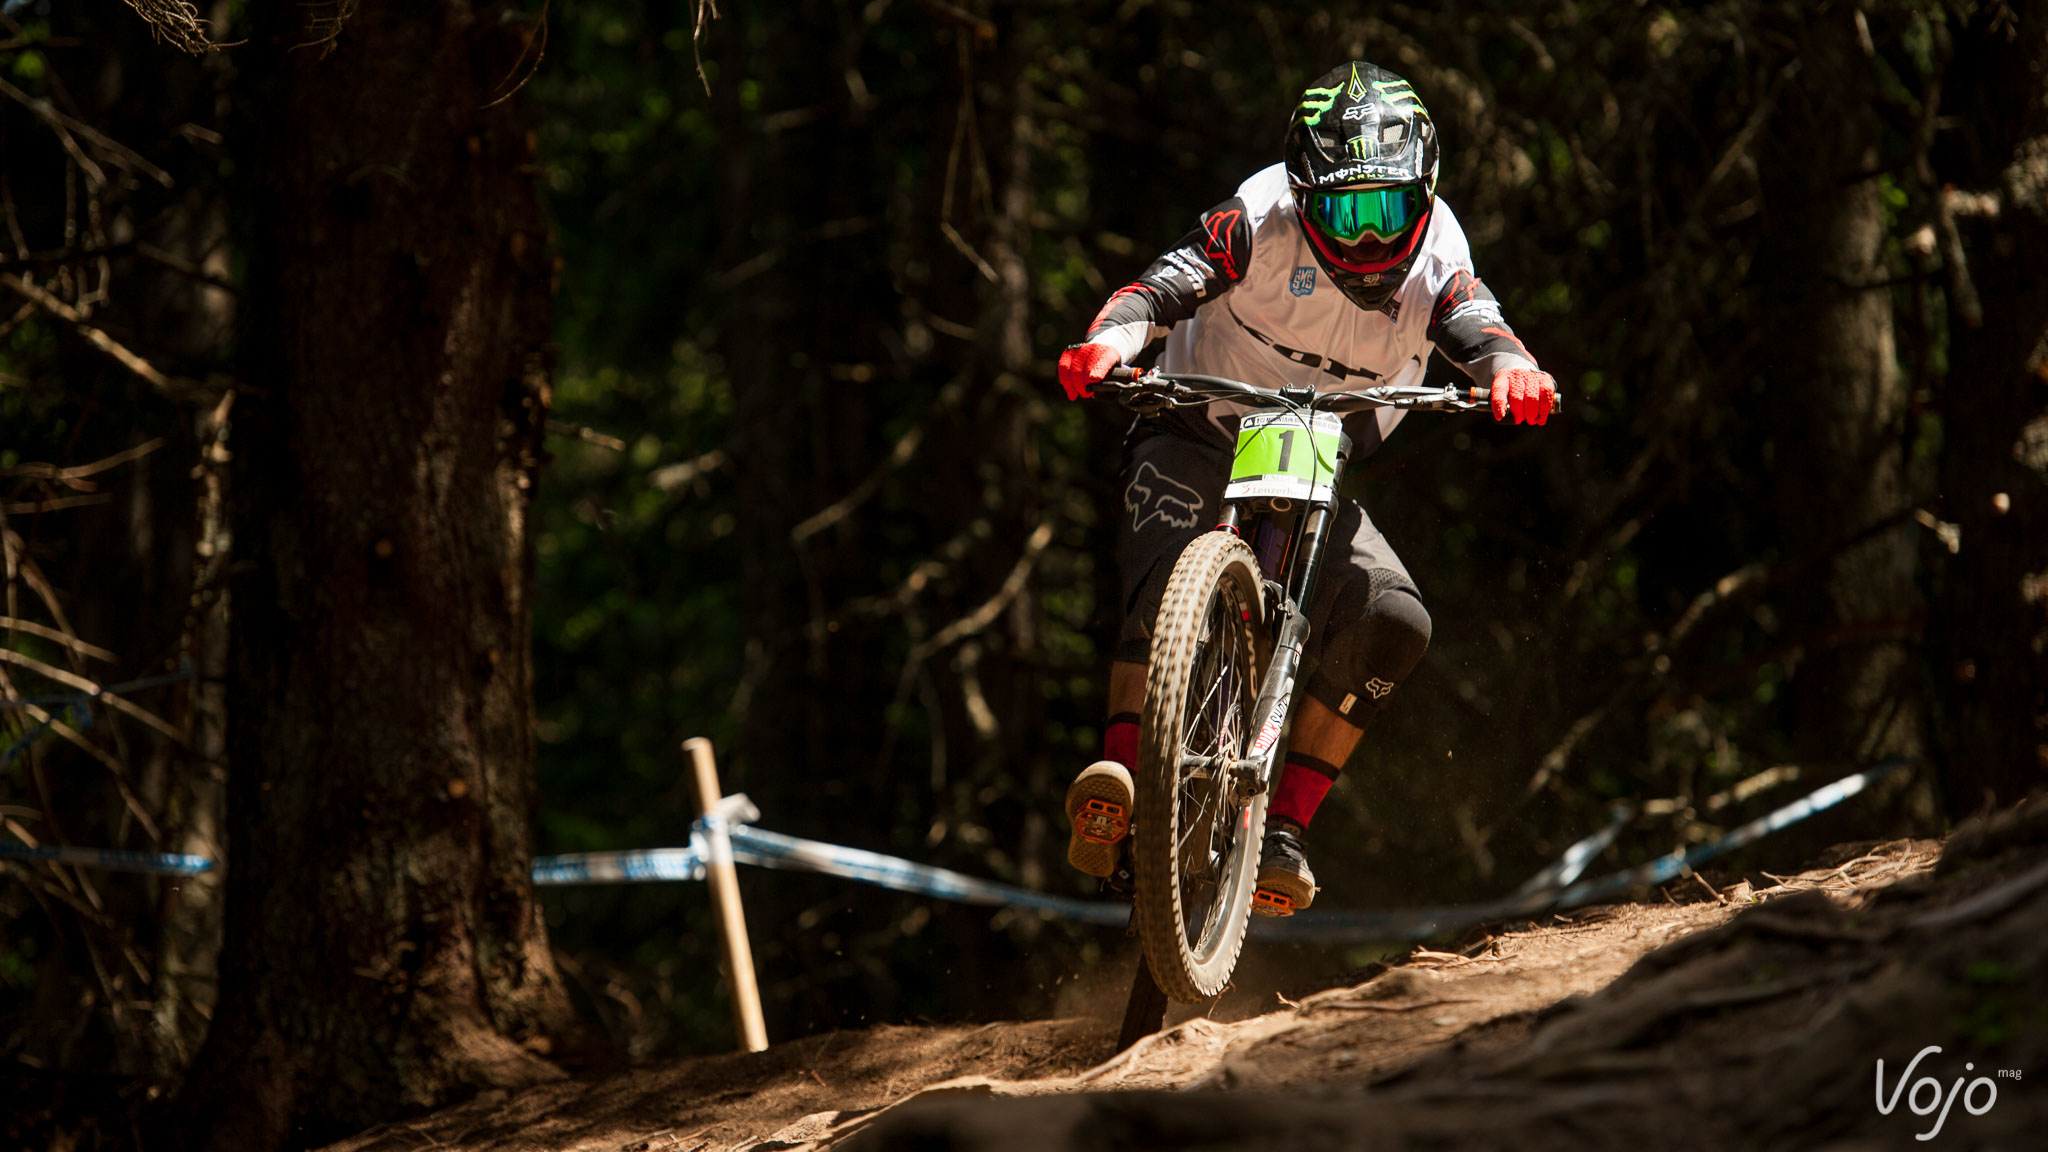 World_Cup_Lenzerheide_DH_Copyright_VojoMag-1